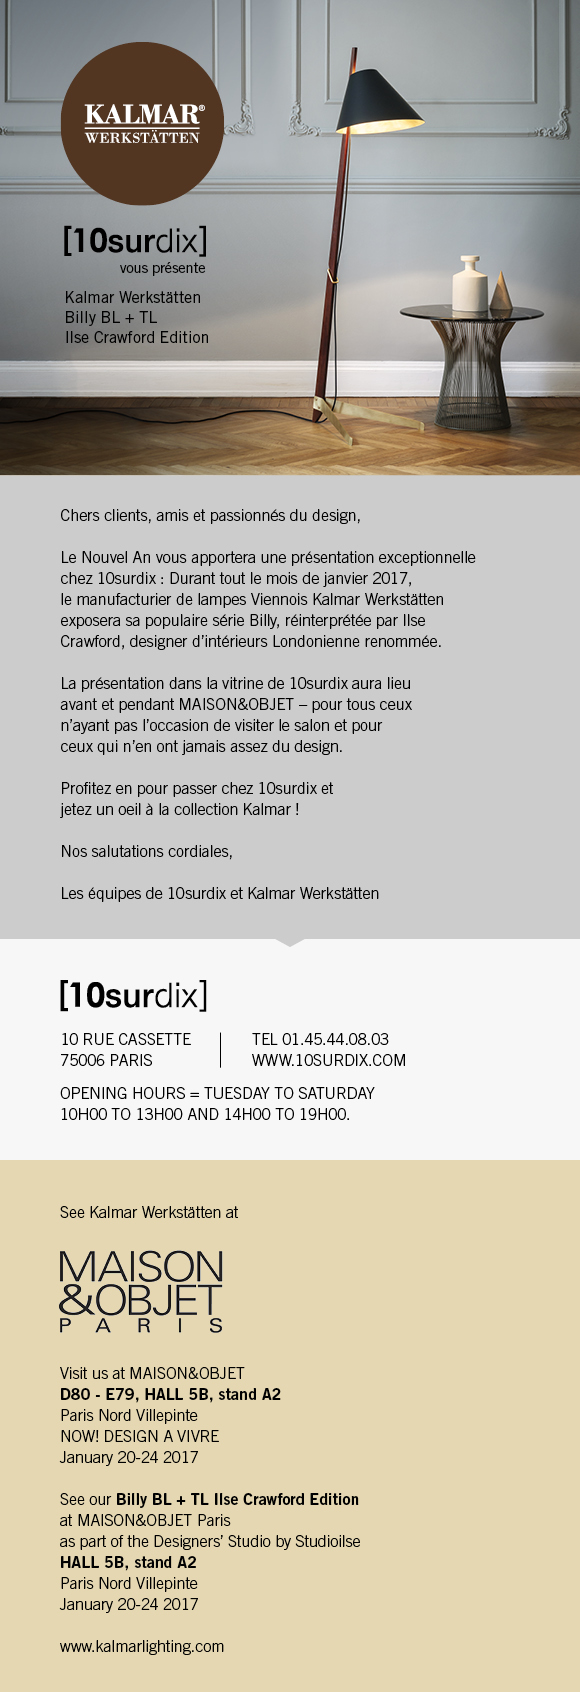 newsletter-surdix